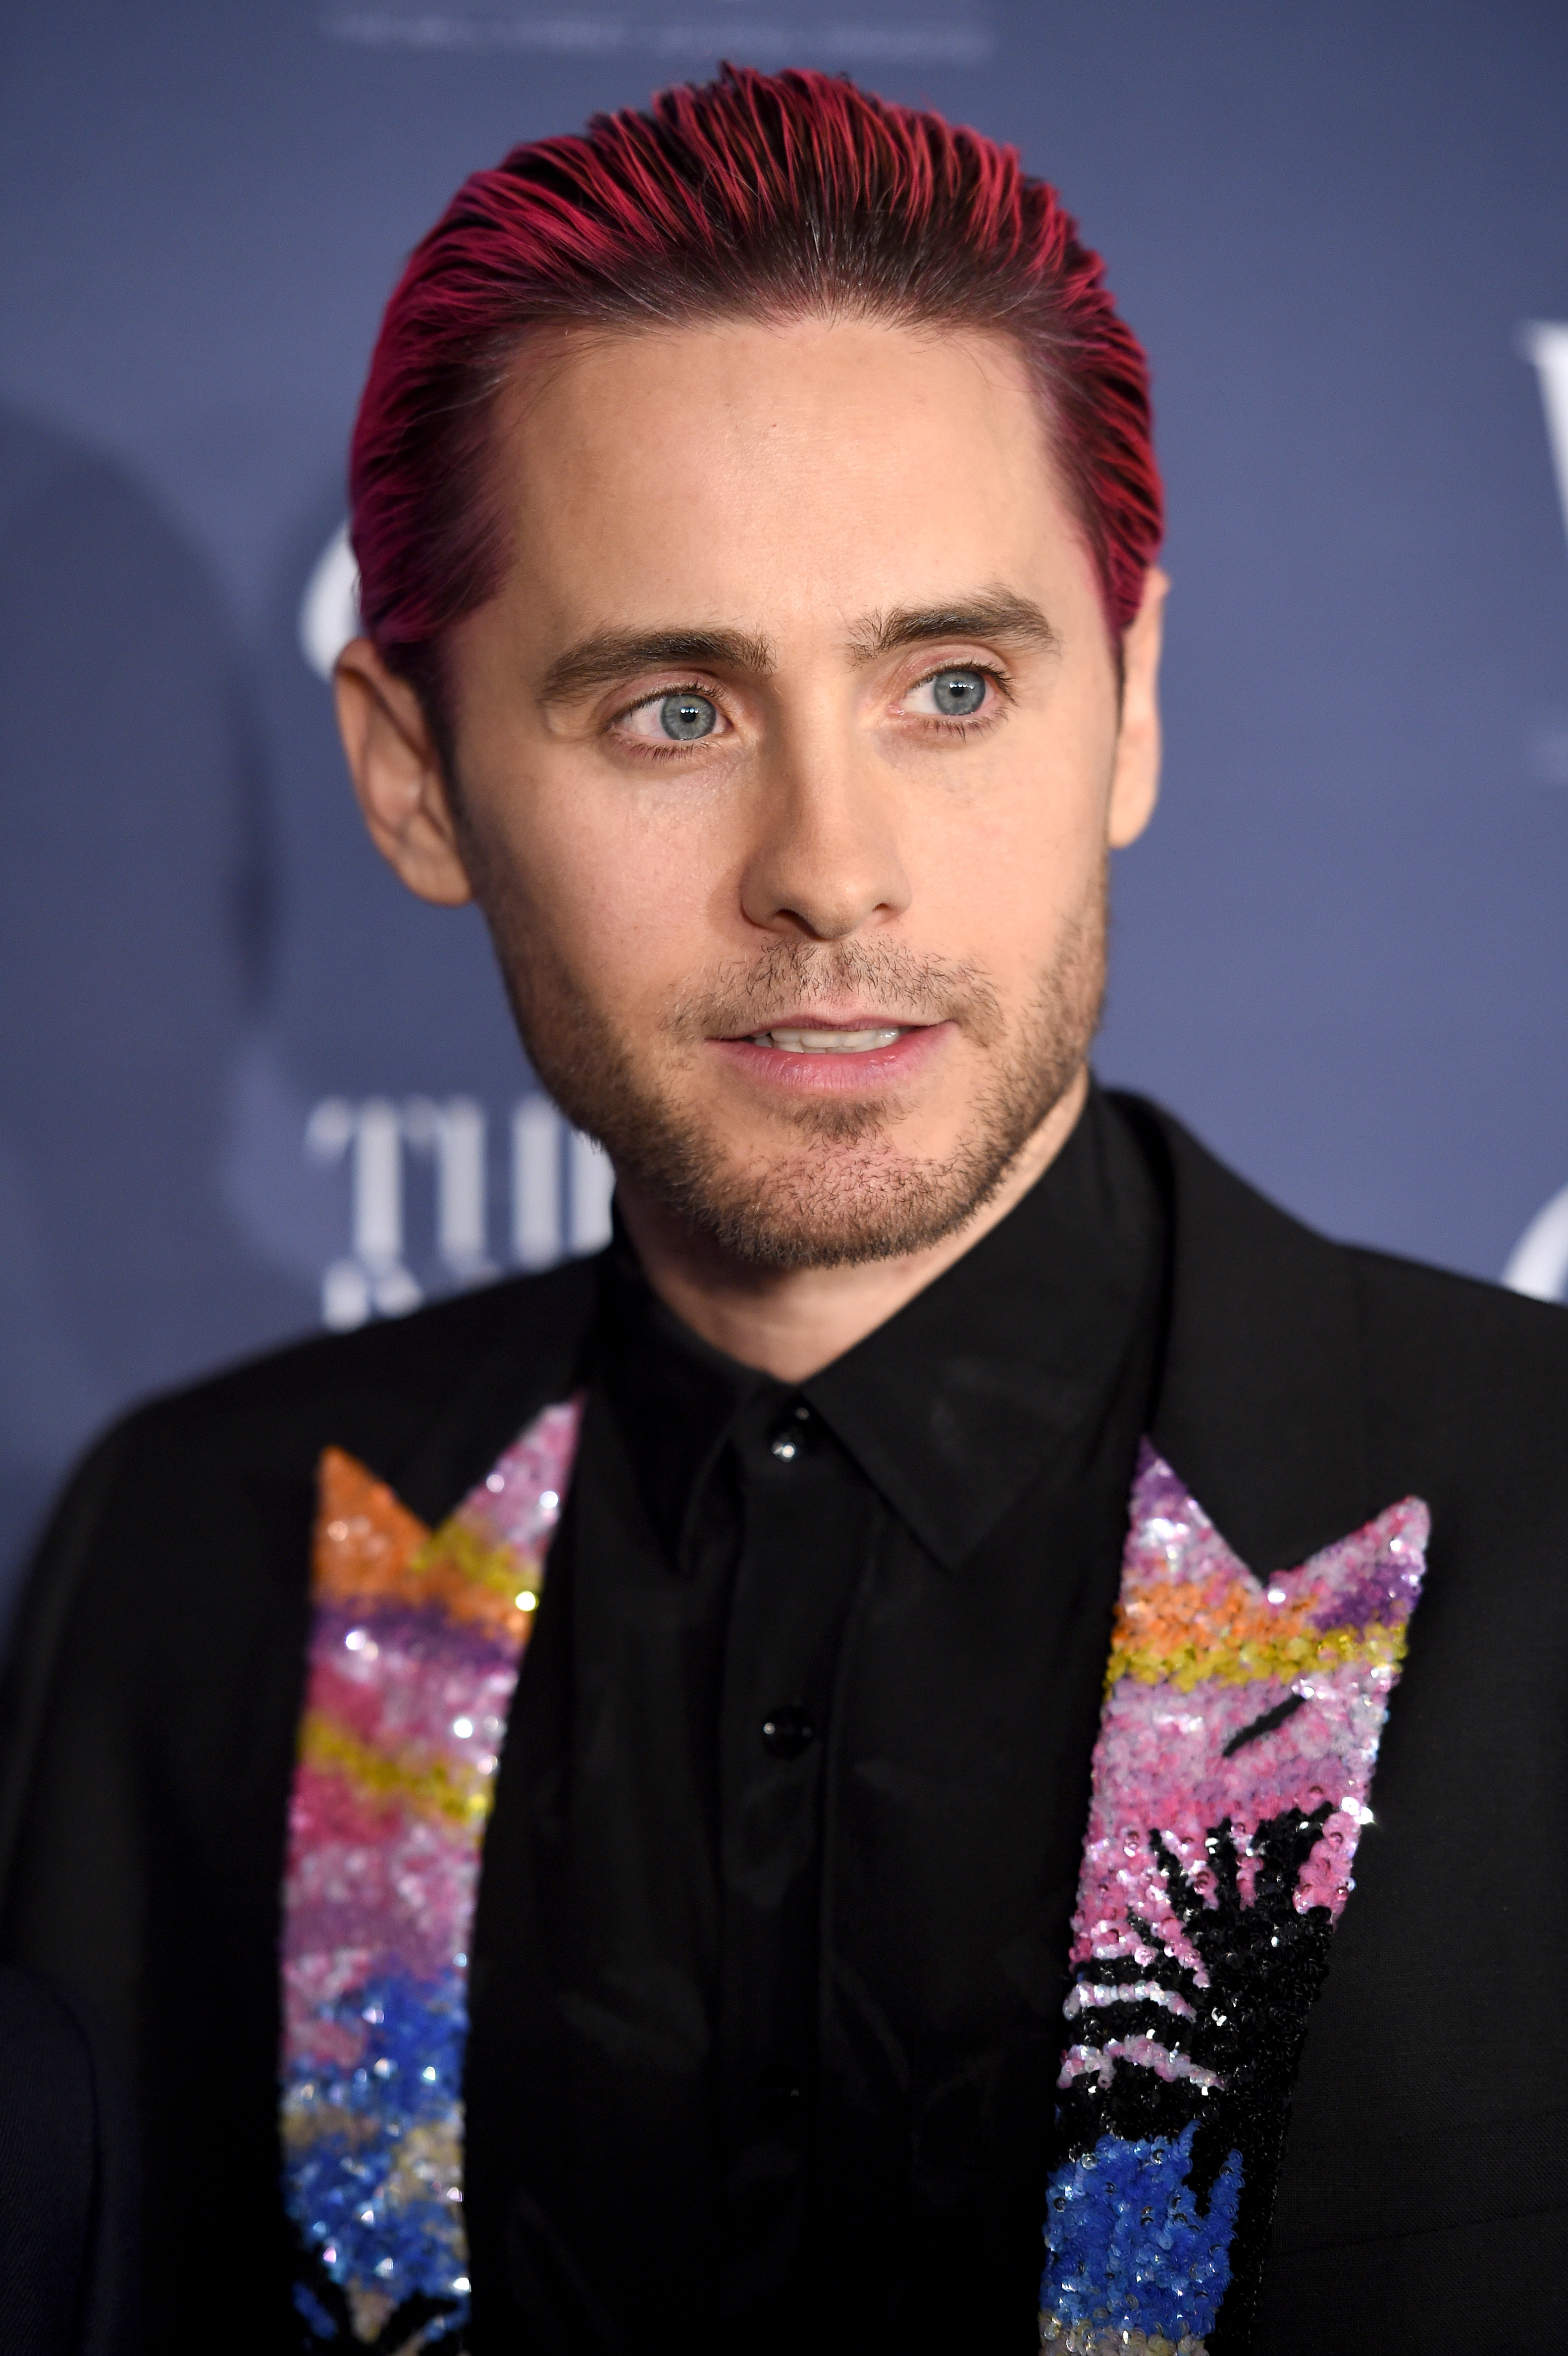 Jared Leto Wears Palm Tree Lapels Has Fun With Fashion On The Red